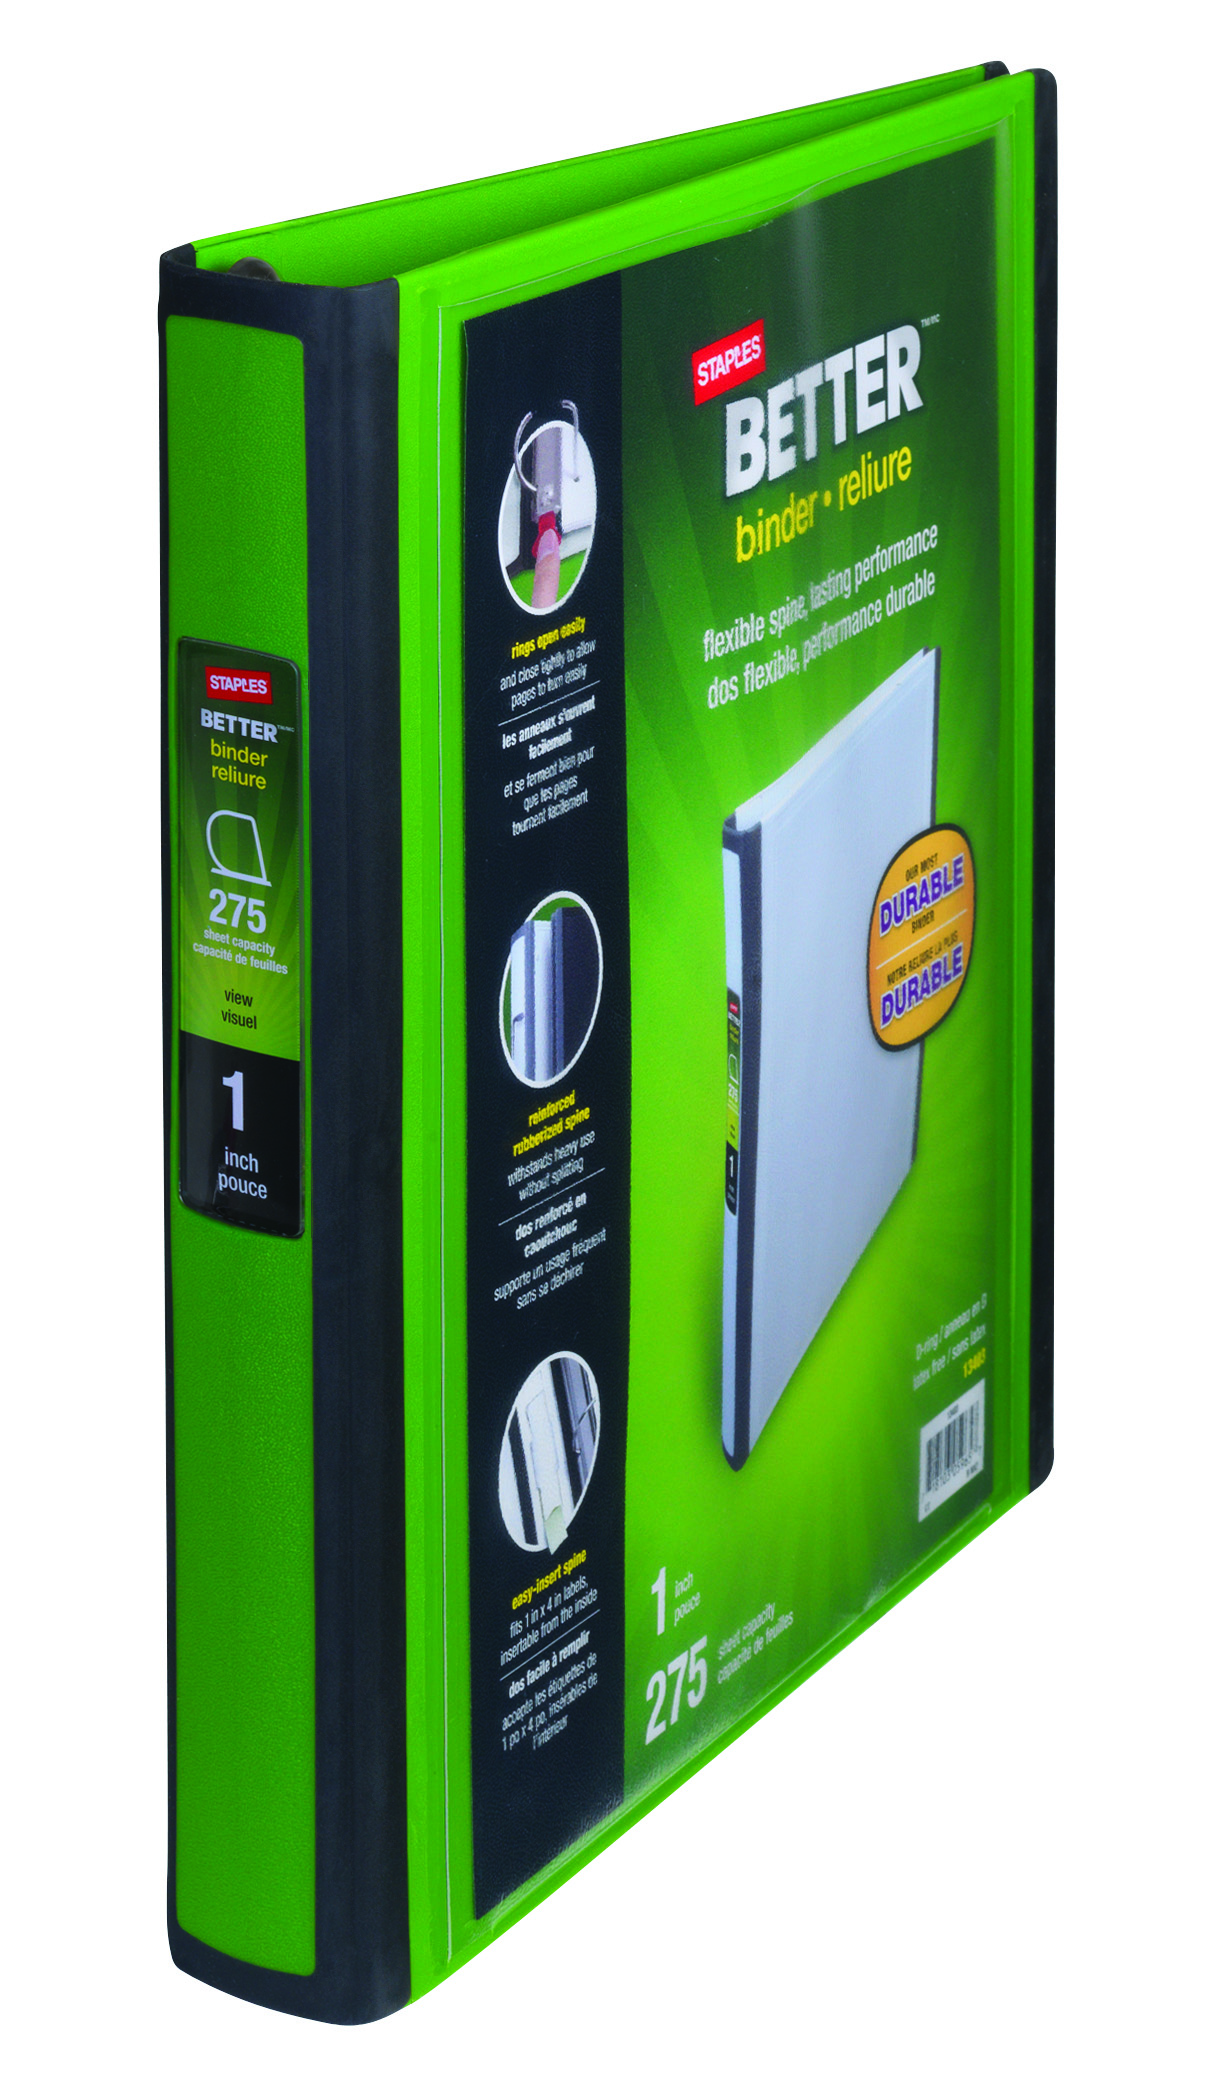 Staples Better 1-Inch D 3-Ring View Binder, Green (19063